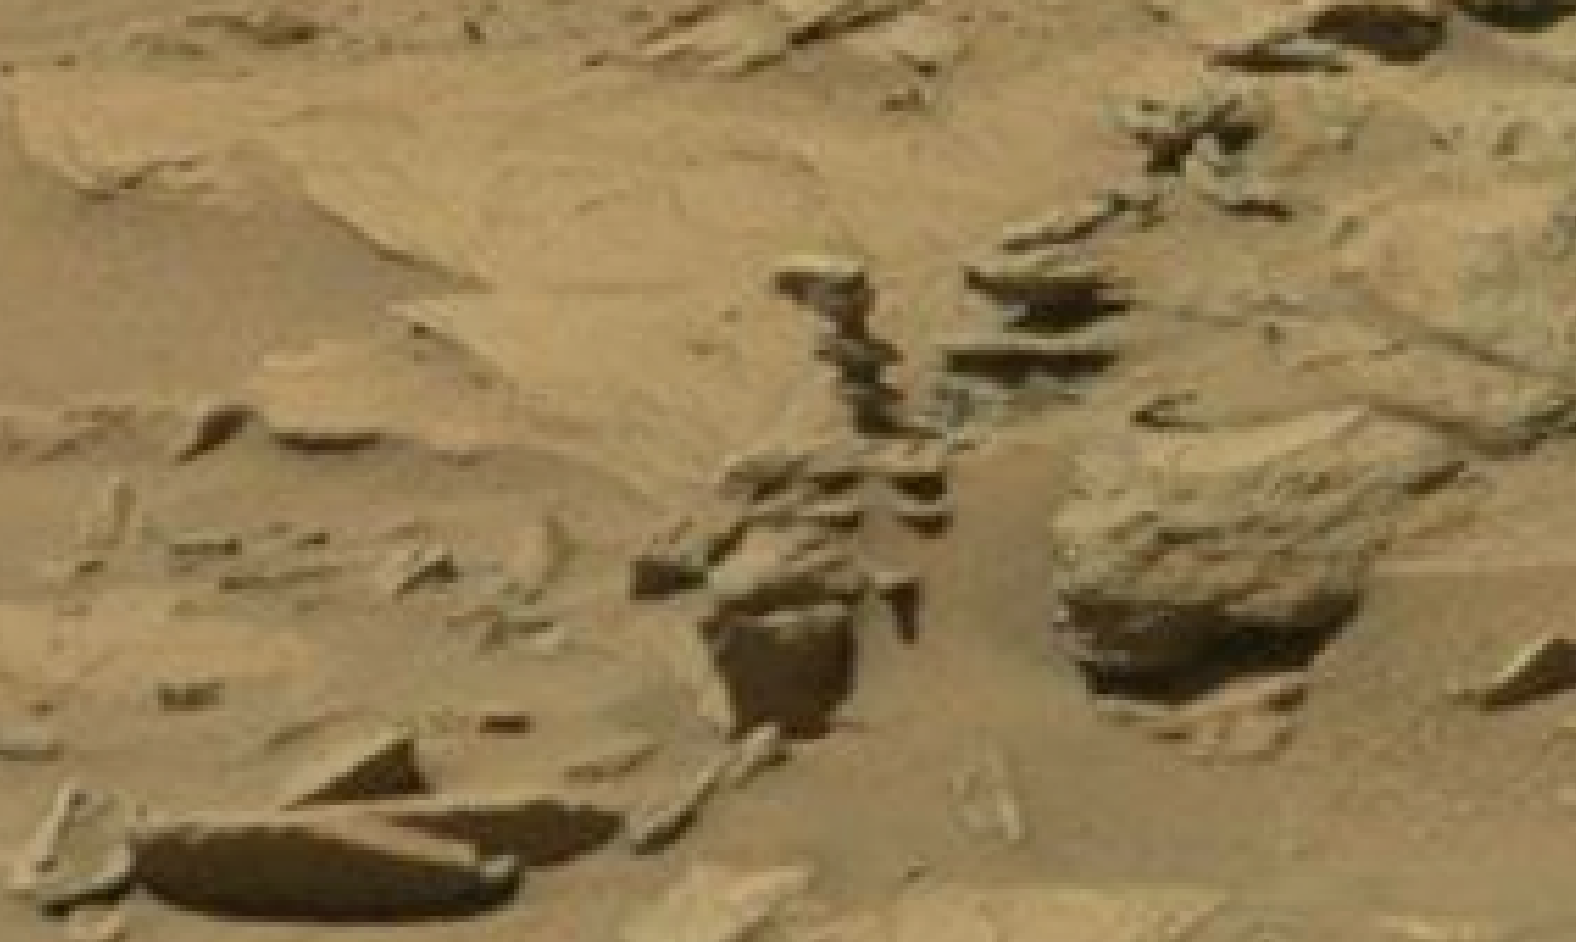 mars sol 1296 anomaly-artifacts 17 was life on mars